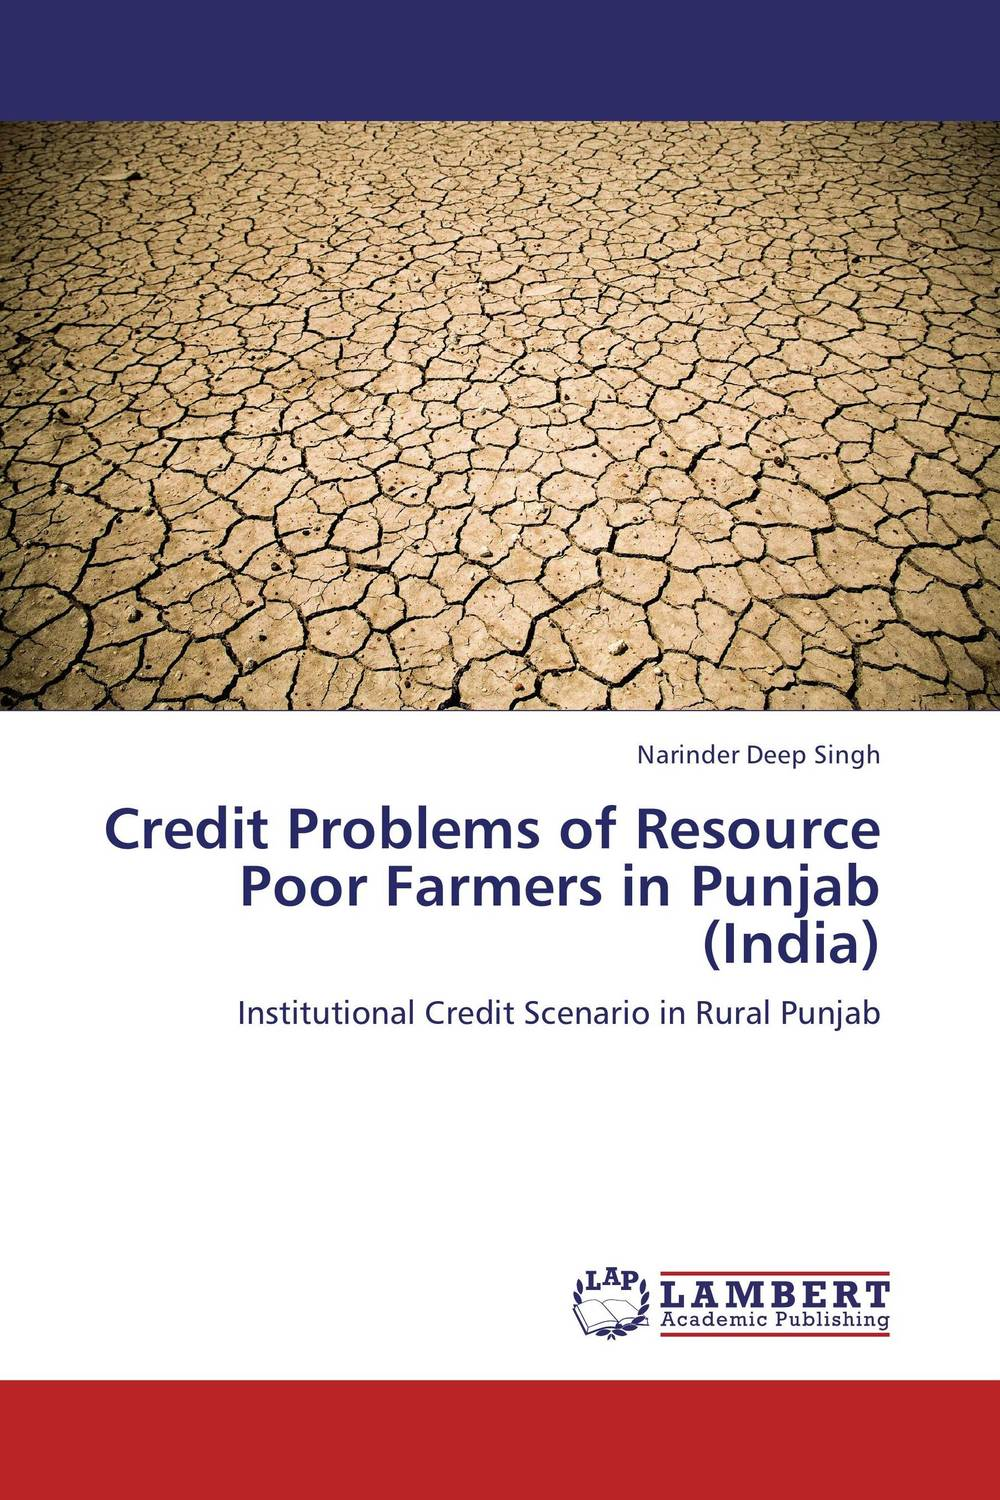 Credit Problems of Resource Poor Farmers in Punjab (India) jaynal ud din ahmed and mohd abdul rashid institutional finance for micro and small entreprises in india